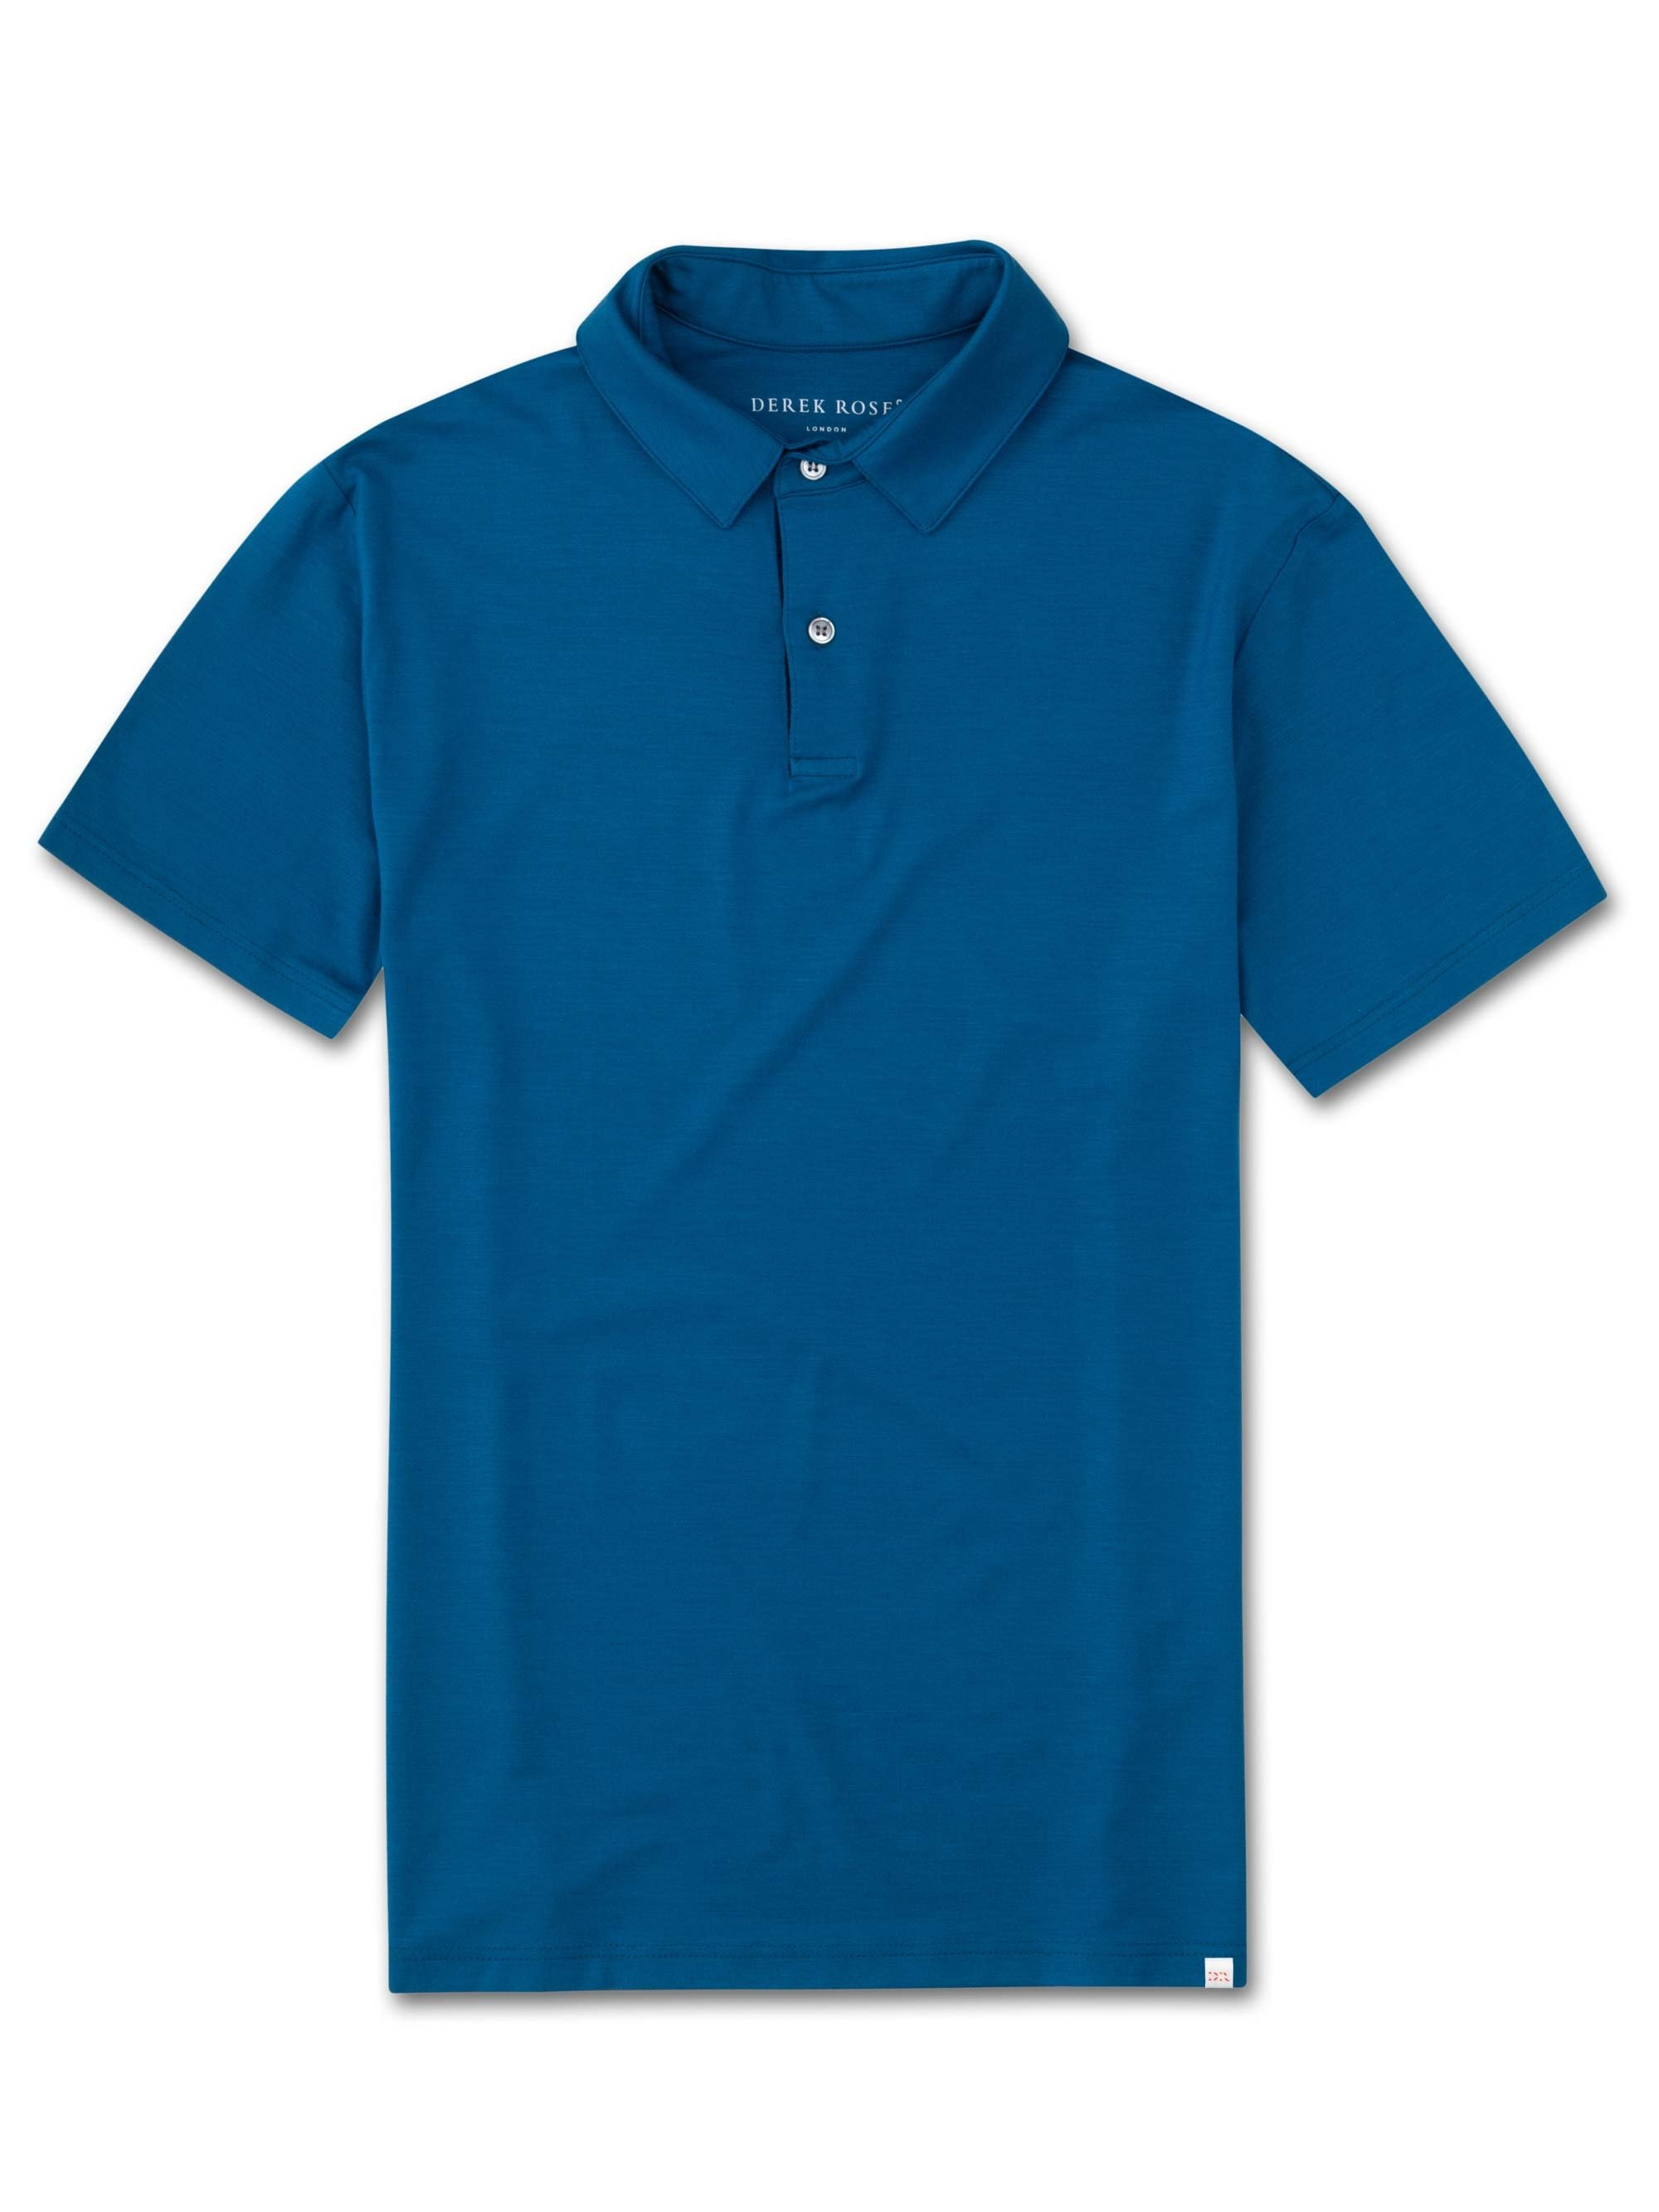 Men's Short Sleeve Polo Shirt Basel 7 Micro Modal Stretch Ocean